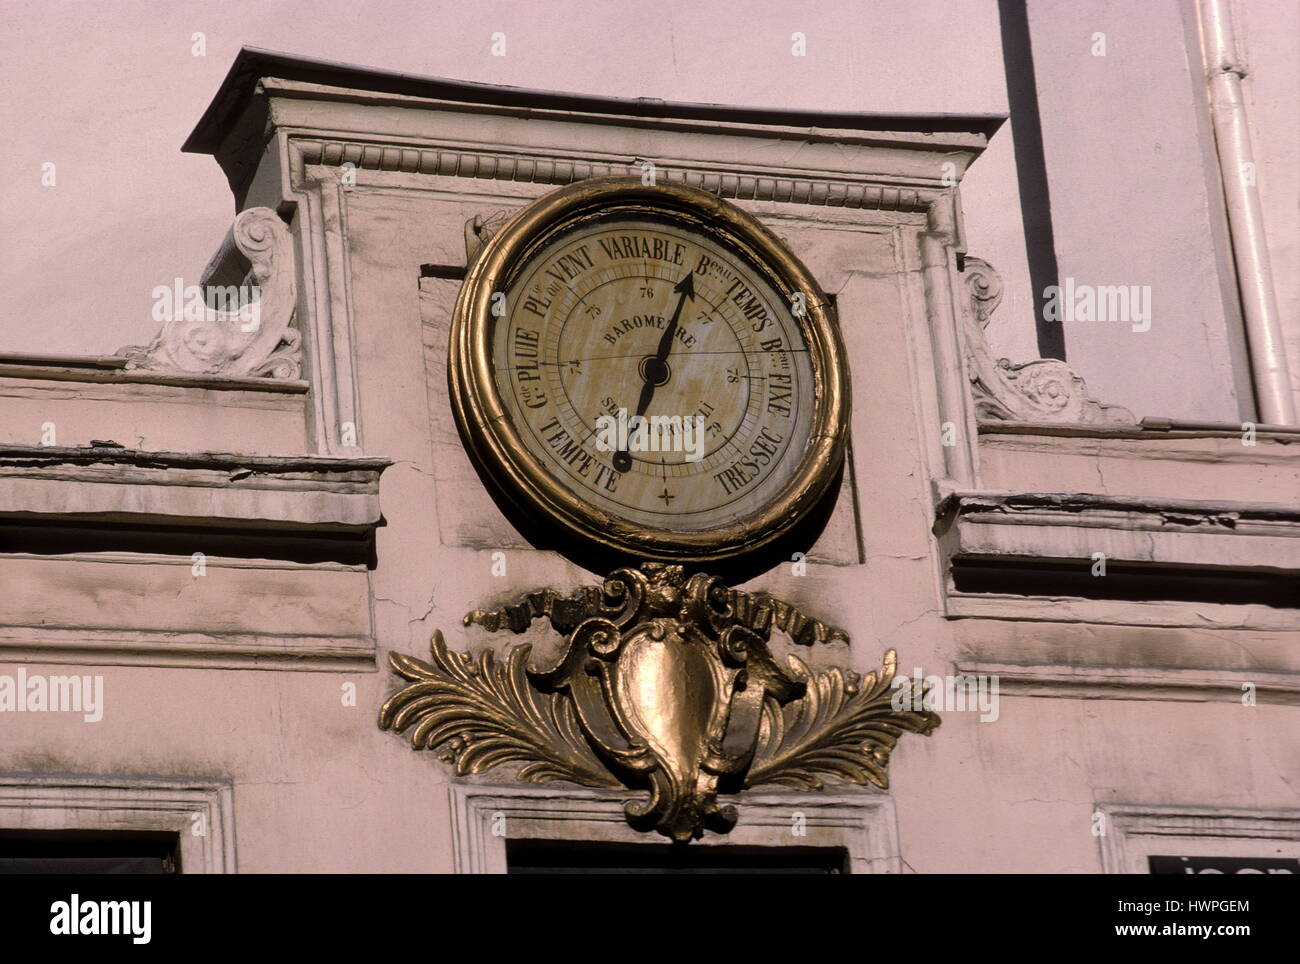 AJAXNETPHOTO. PARIS, FRANCE. - CHANGE IN THE WEATHER - LARGE ANEROID BAROMETER MOUNTED ON A BUILDING FACADE IN THE - Stock Image